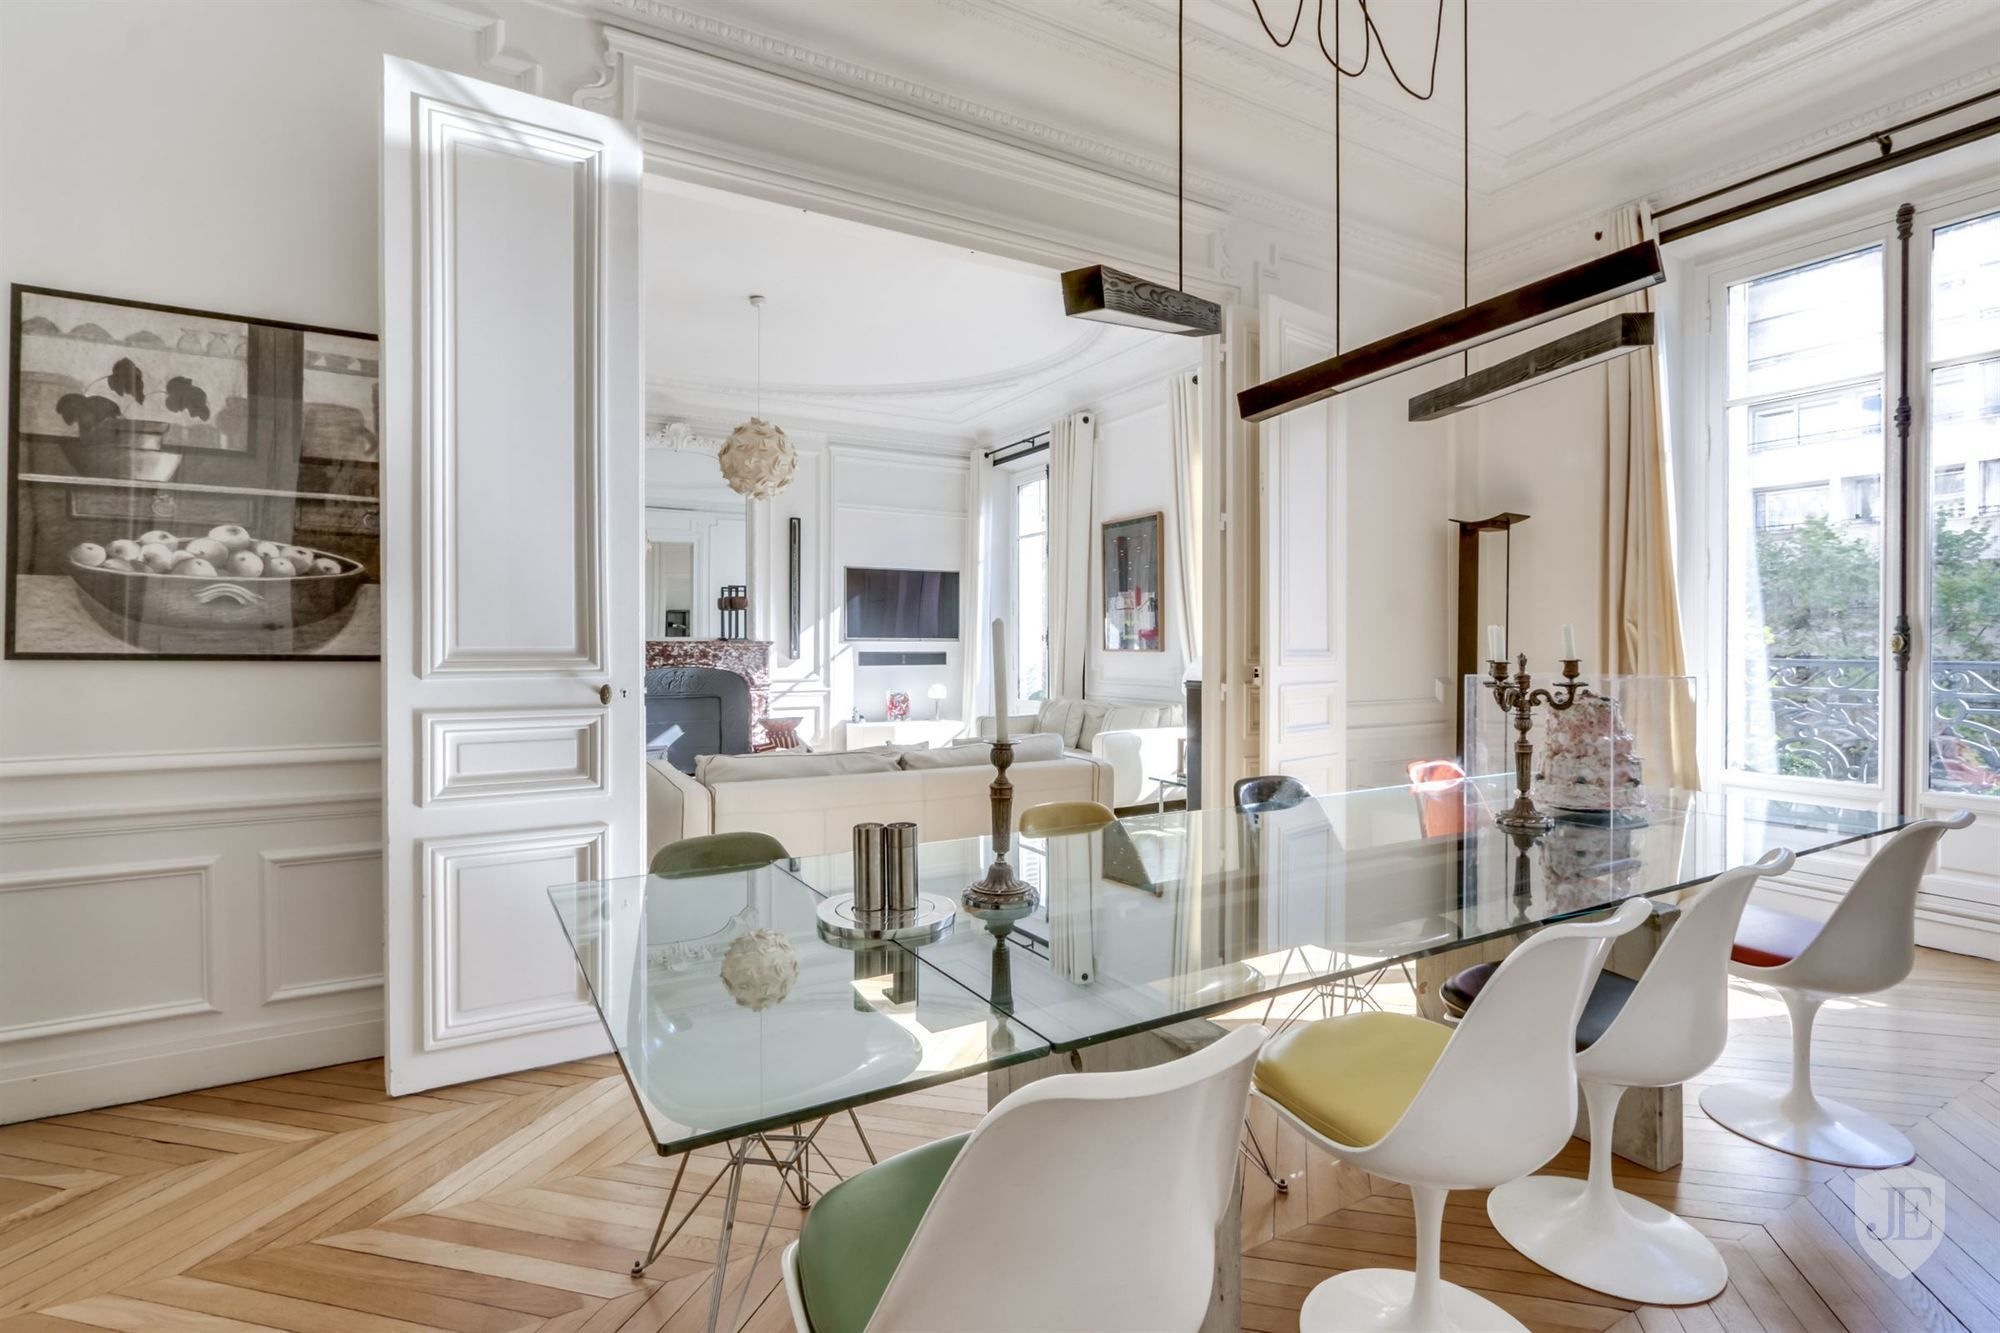 Apartment in PARIS France for sale on JamesEdition | Home ...